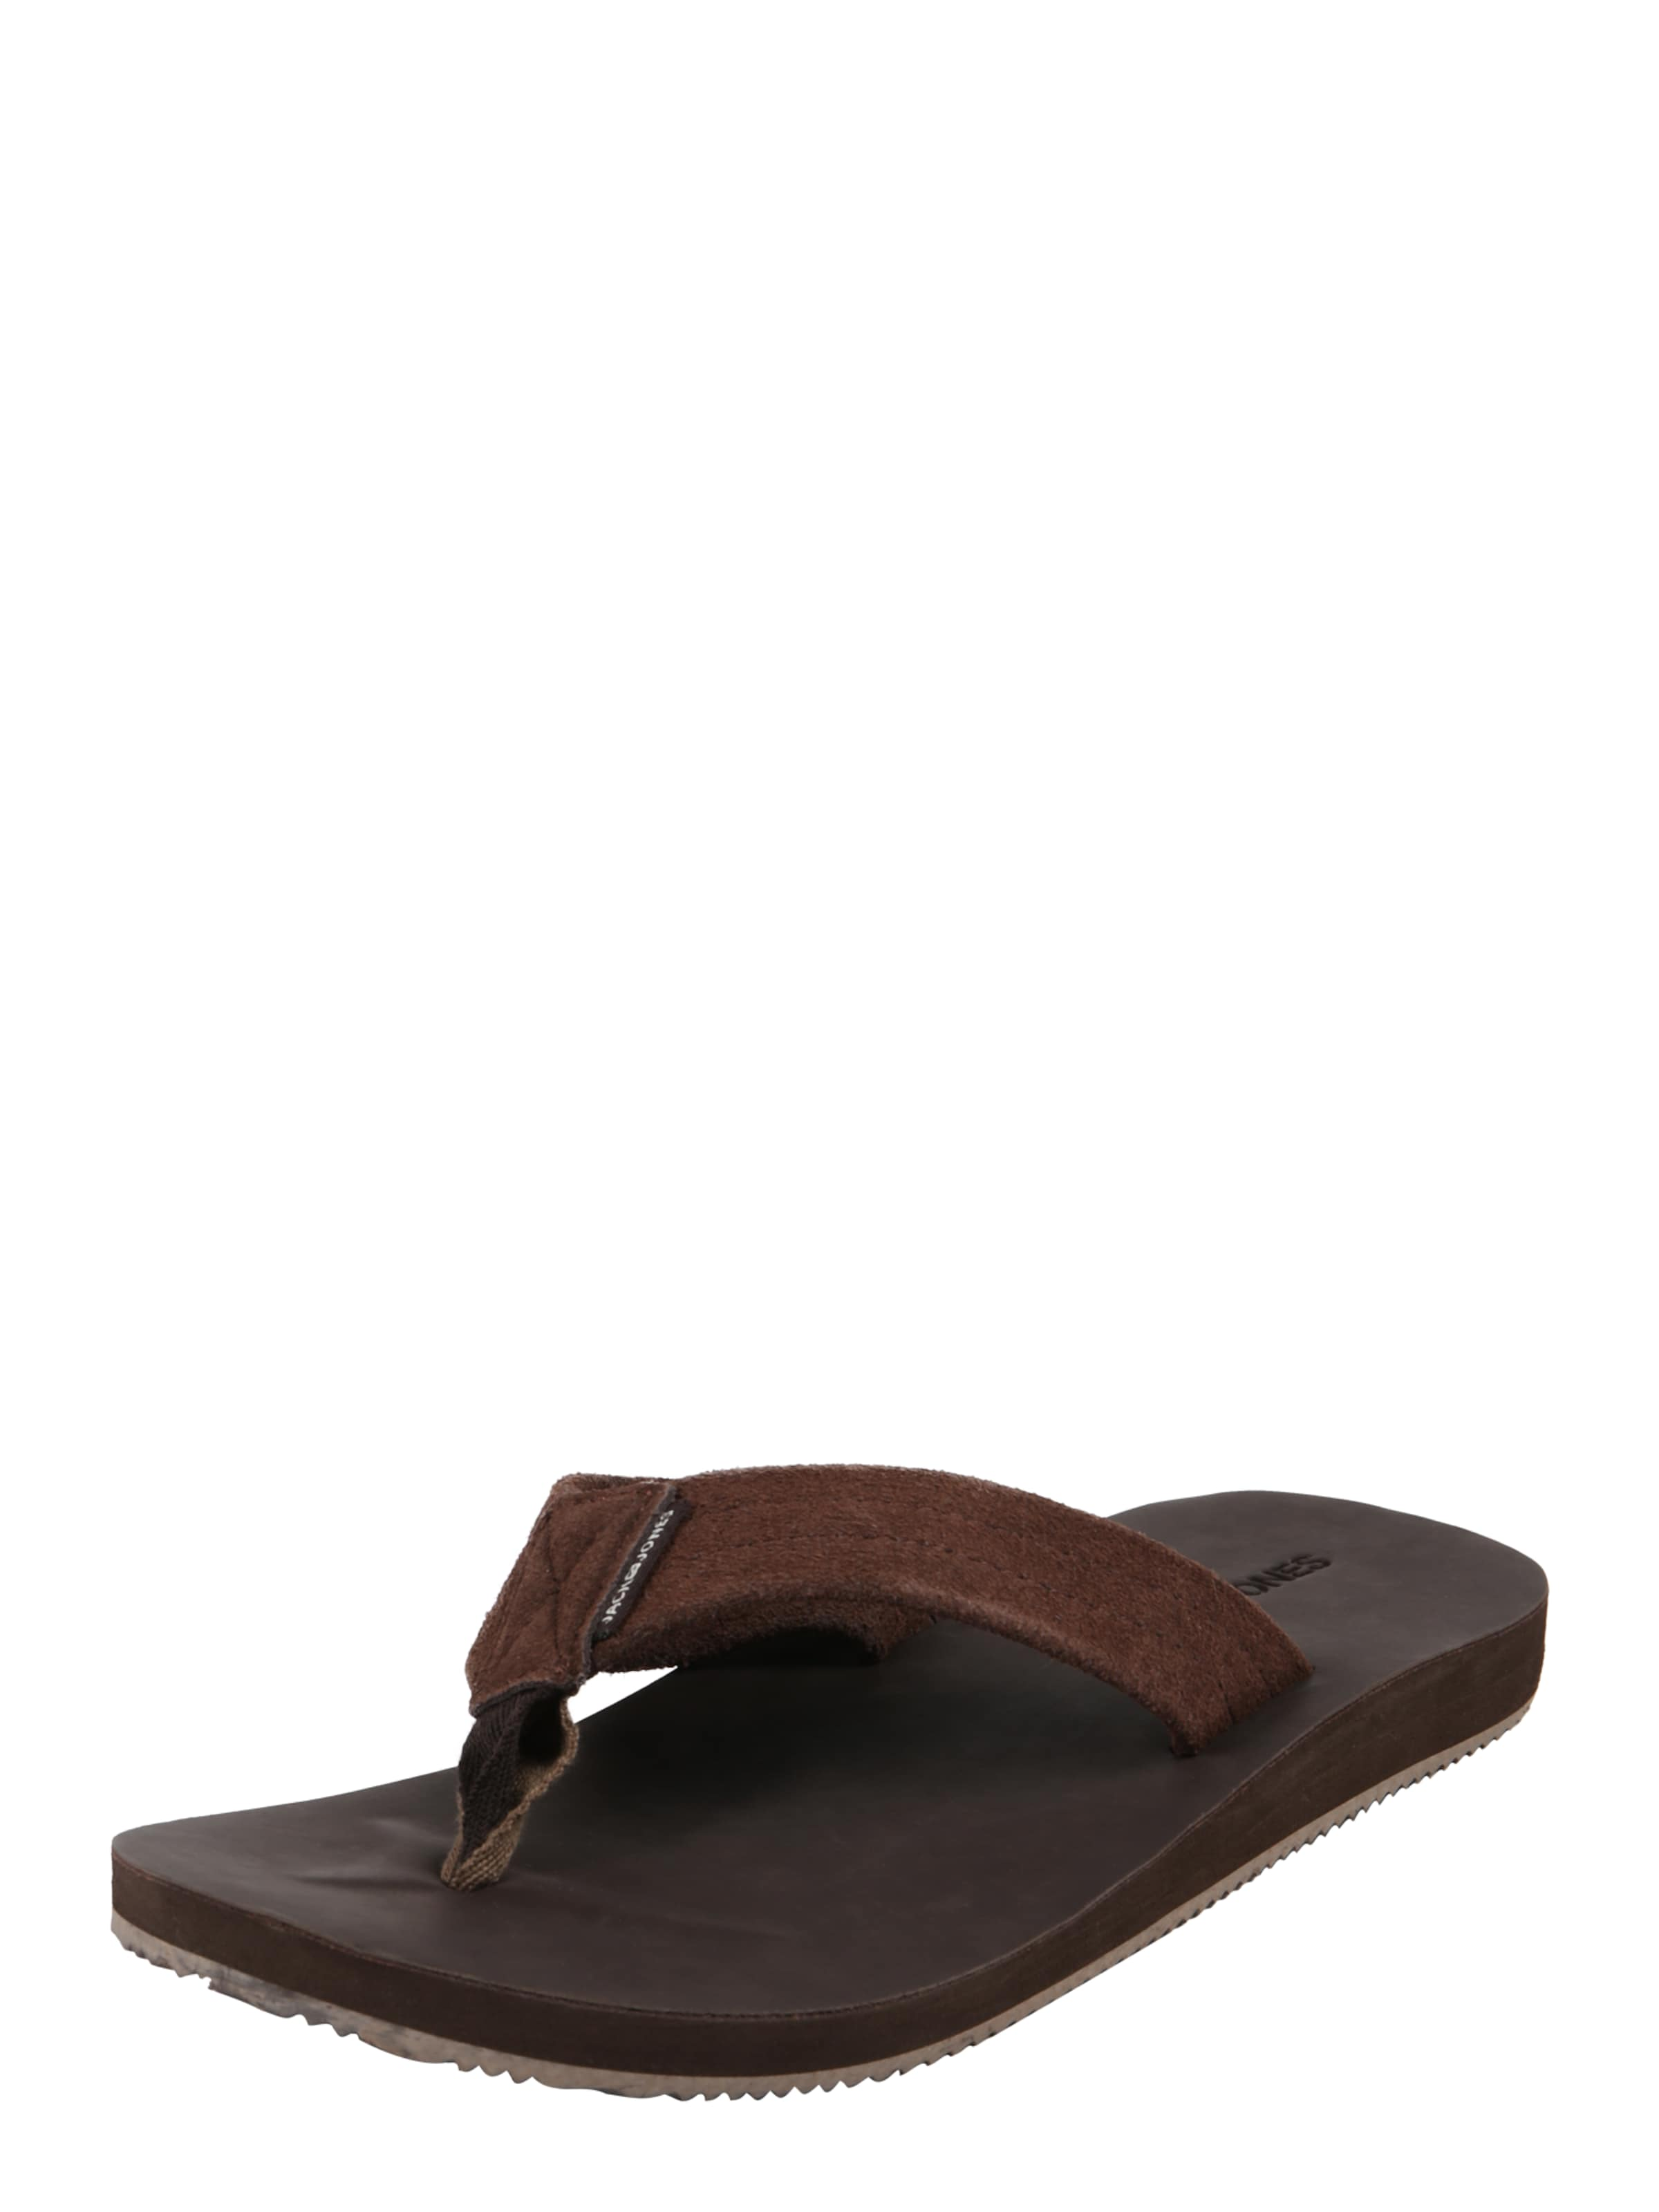 In Jackamp; Jones Dunkelbraun 'ramsey Slipper Suede' wnm8N0